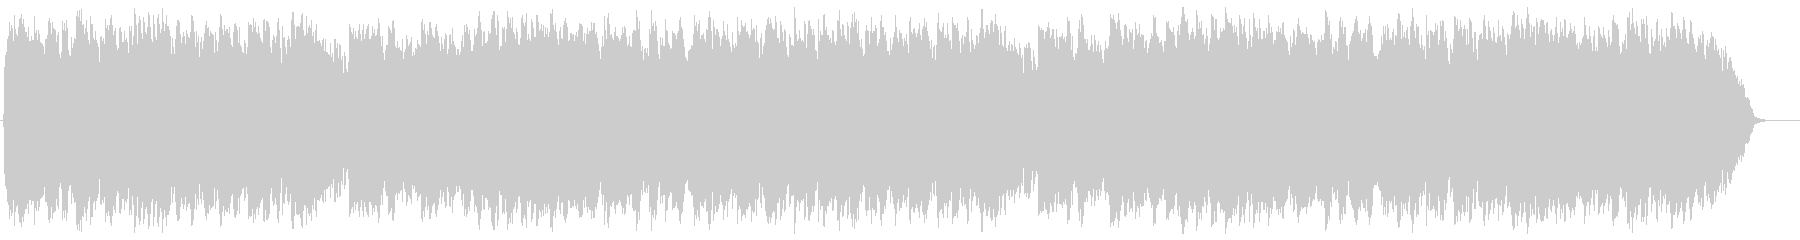 Joy of the Lord's Hope (Bach)'s unreproduced waveform